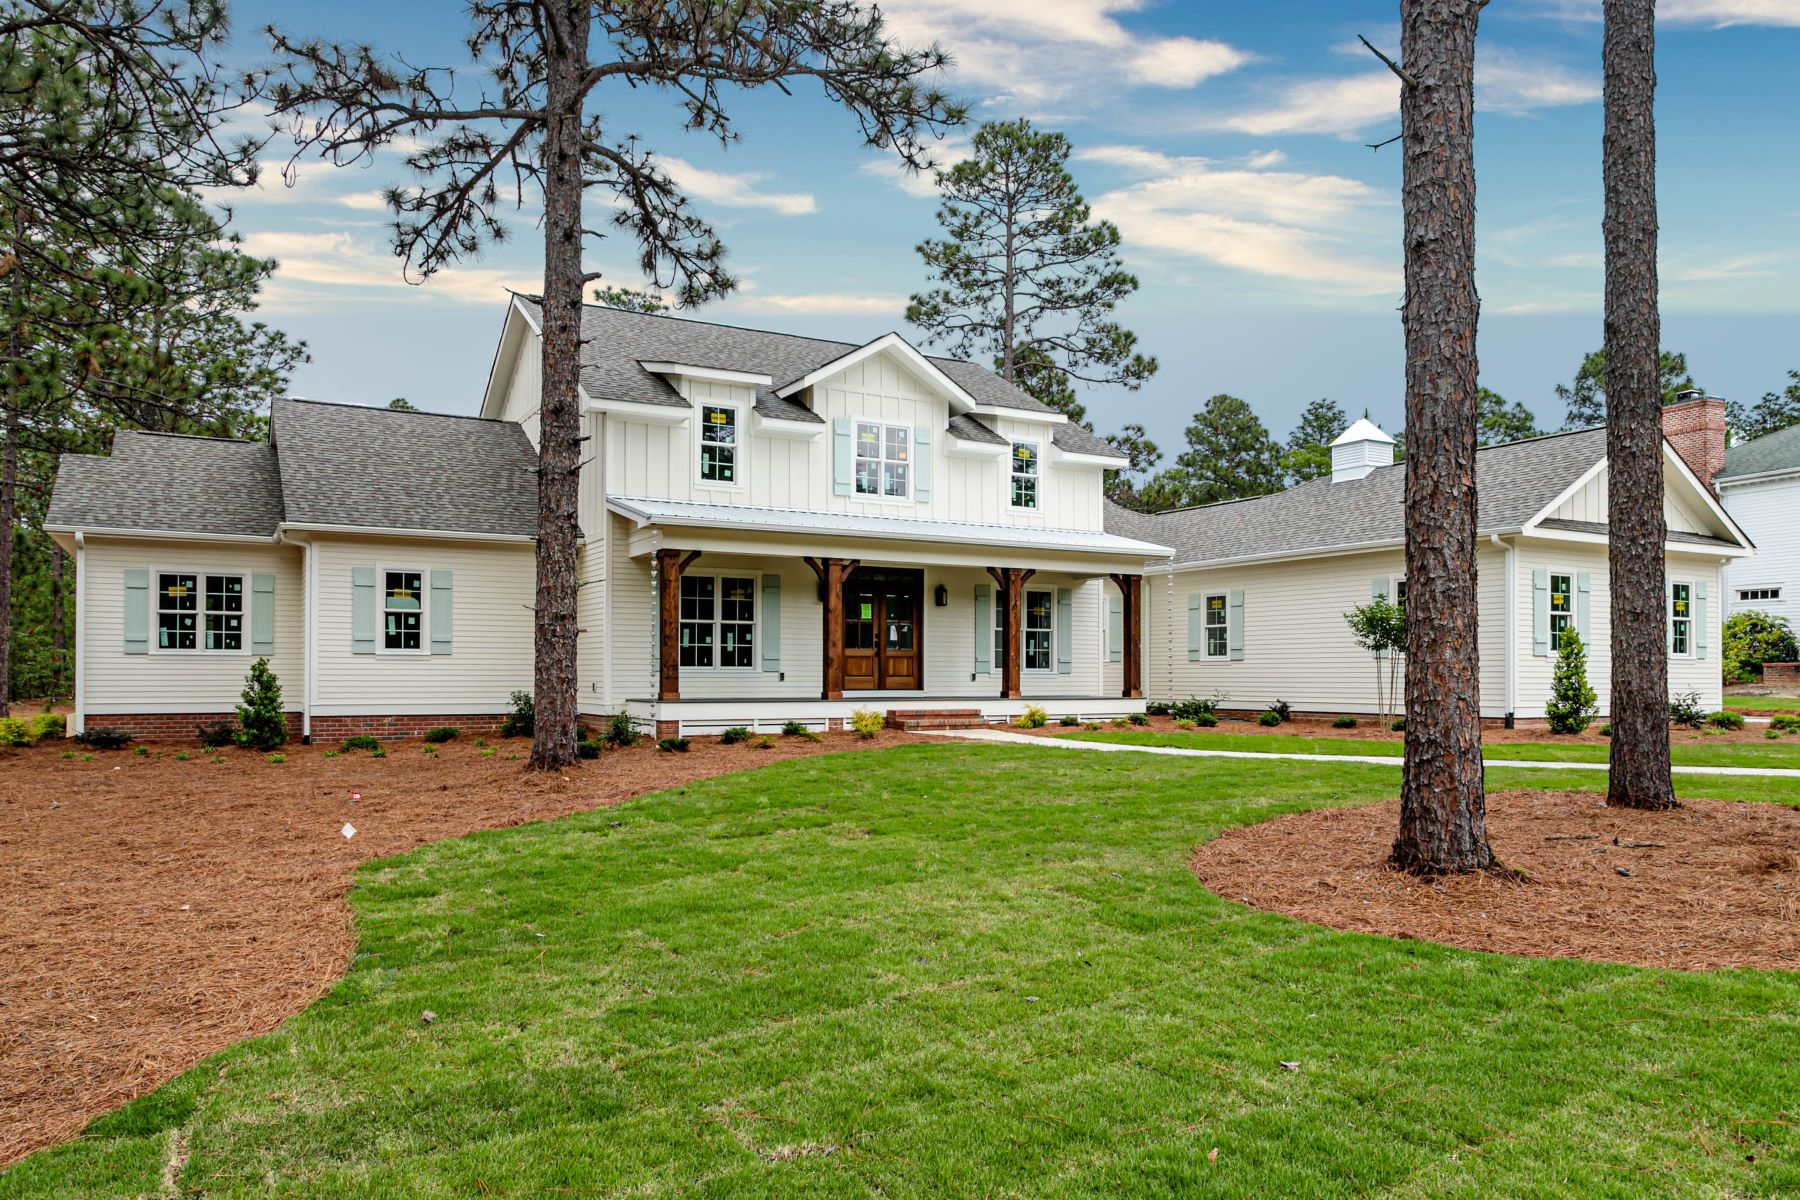 Single Family Homes for Sale at 107 Chesterfield Dr. Pinehurst, North Carolina 28374 United States